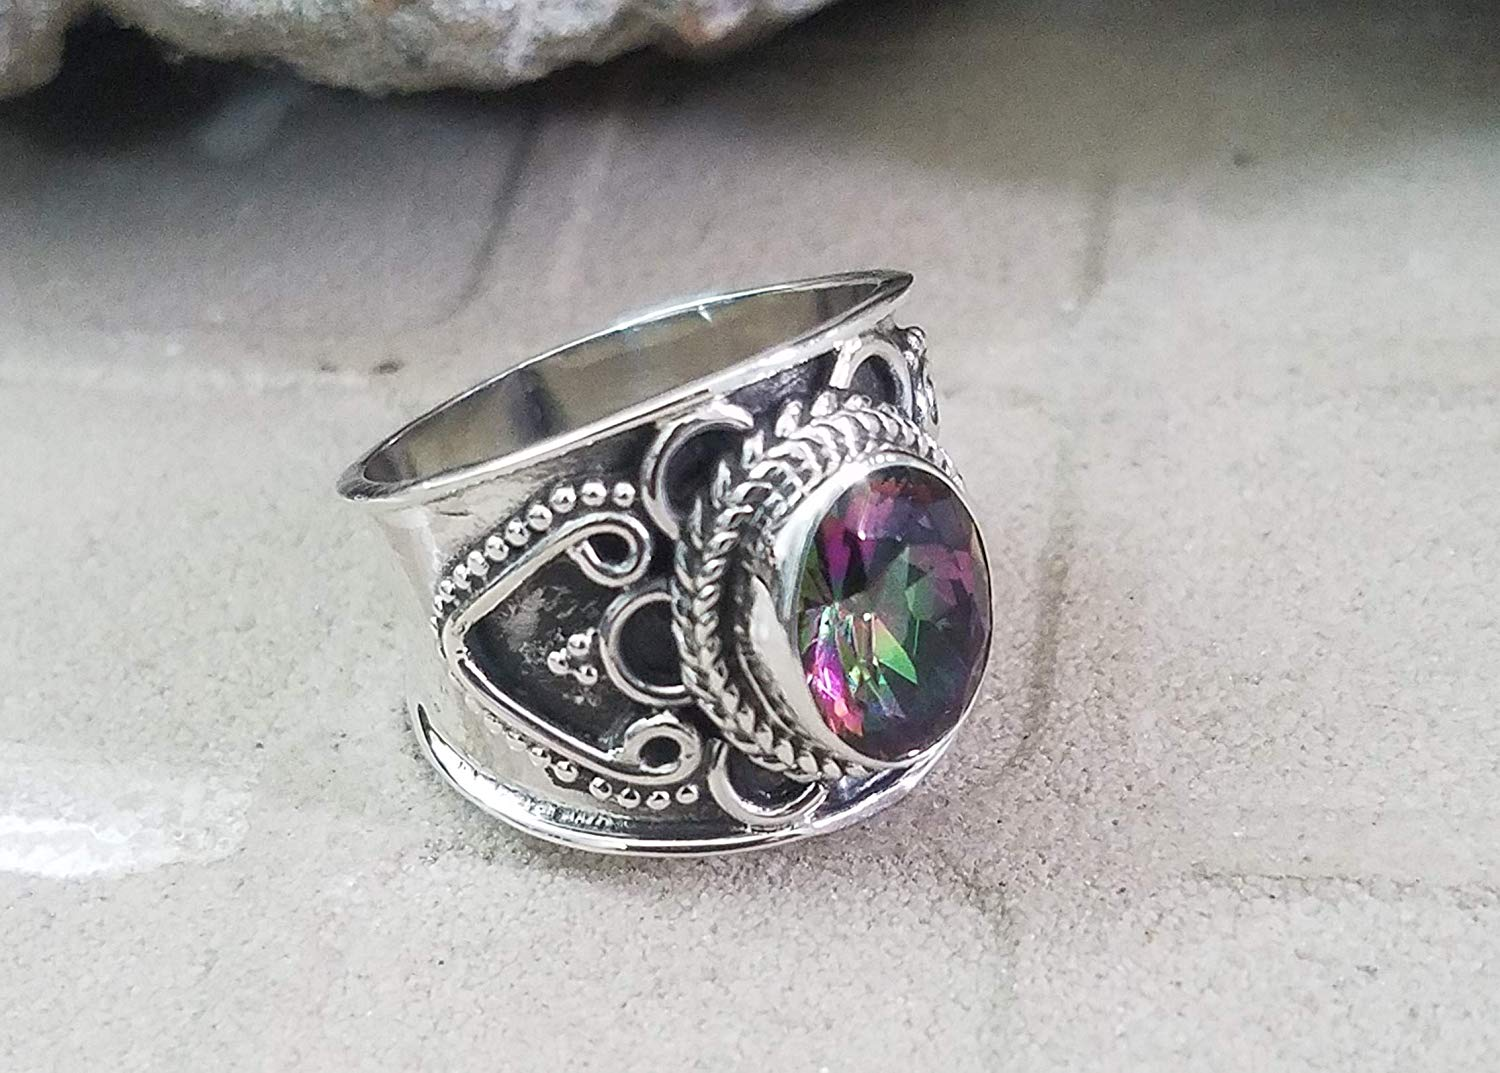 Mystic Topaz Ring.925 Sterling Silver.Wide Band Ring.Bohemian Tribal Ring.Wedding & Engagement Ring.Glamour Ring.Intricate Design.Extremely Unusual Ring.Unique & Ultimate Jewelry.US All Size